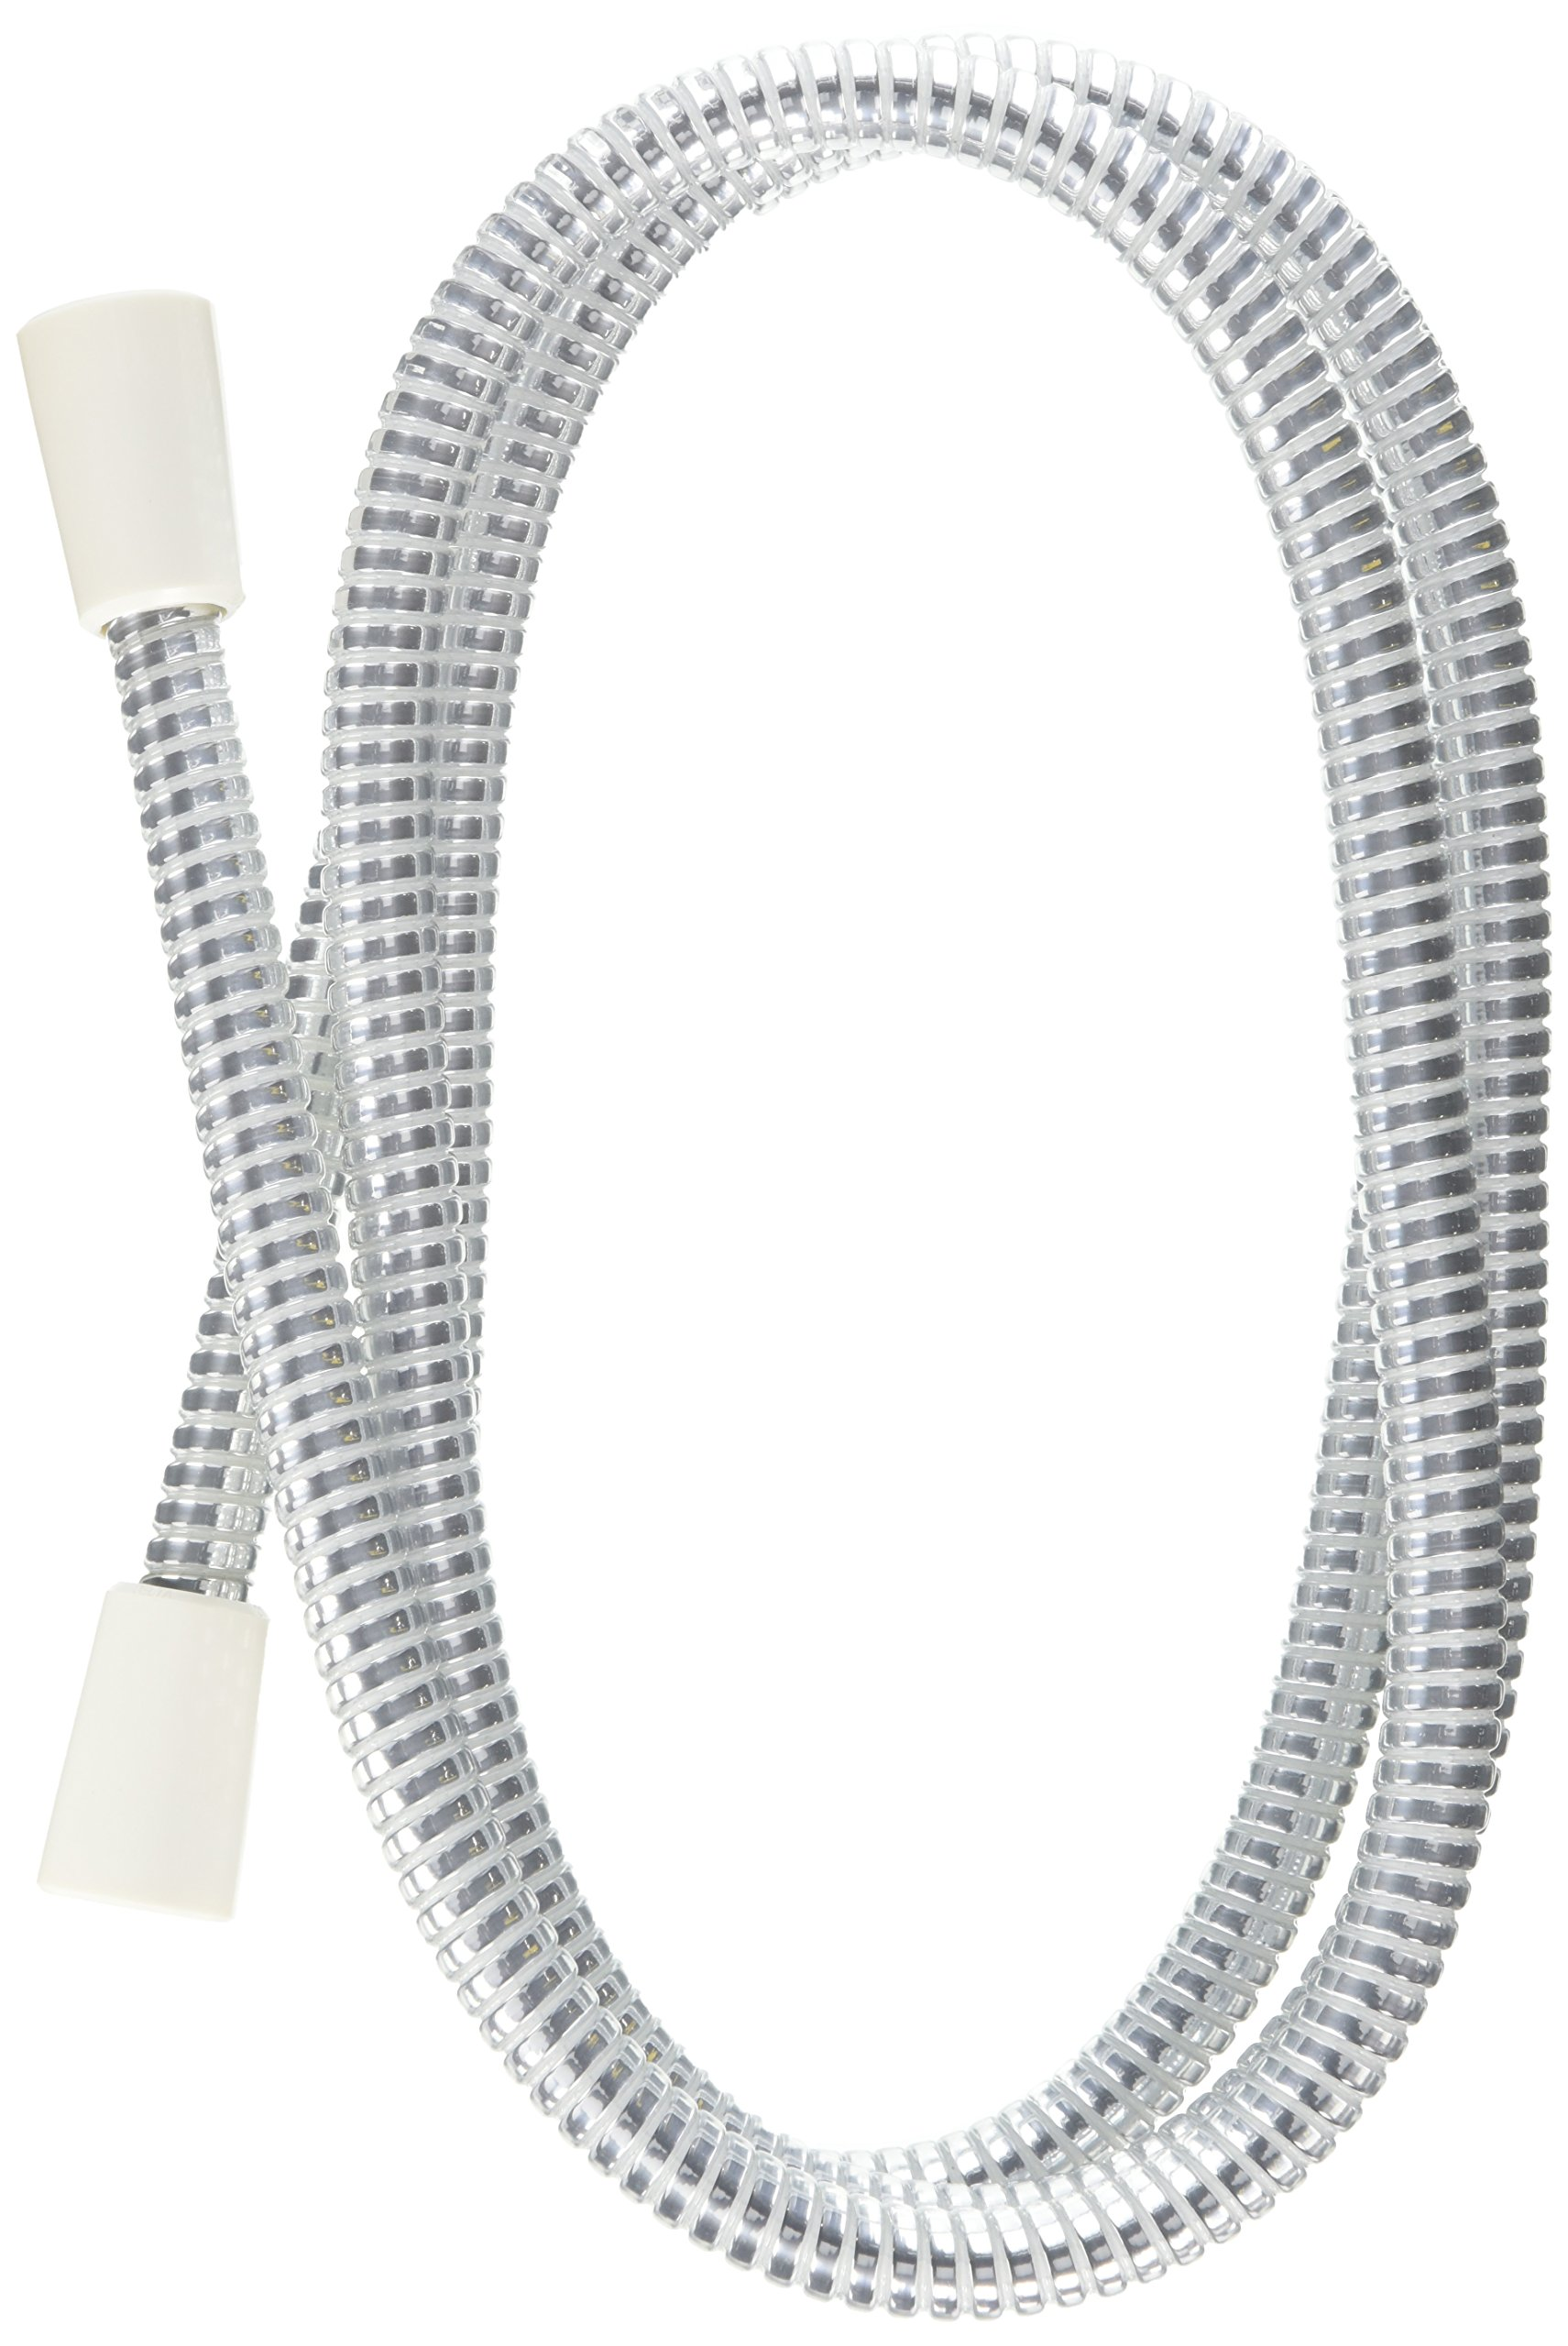 Delta Faucet 75006140 with 86-Inch UltraFlex Hose, Chrome/White by DELTA FAUCET (Image #1)